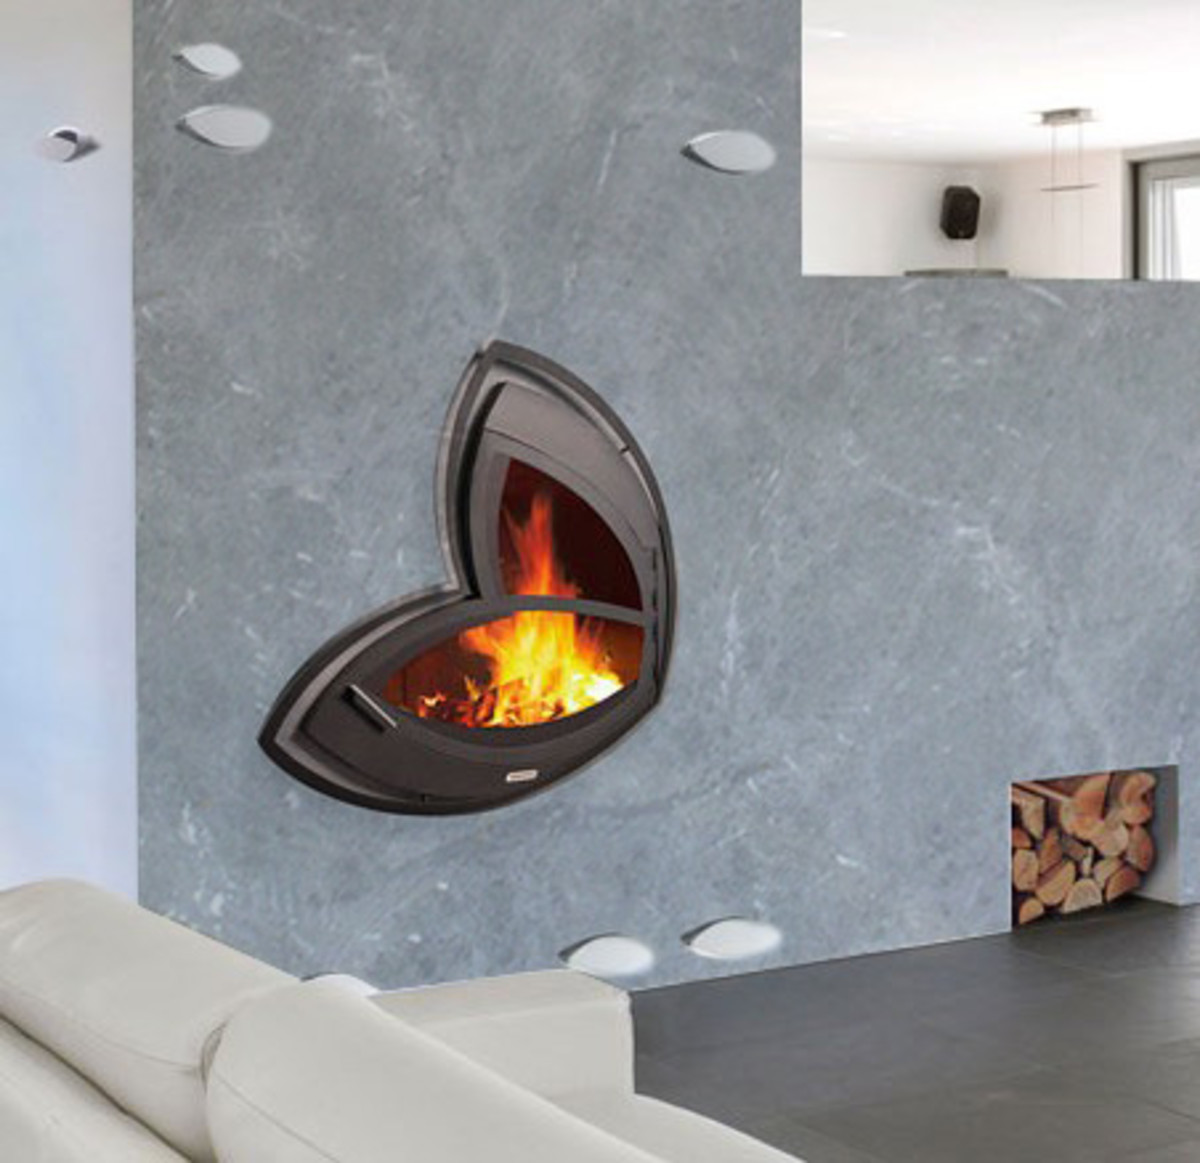 Edgy Asymmetrical Fireplaces